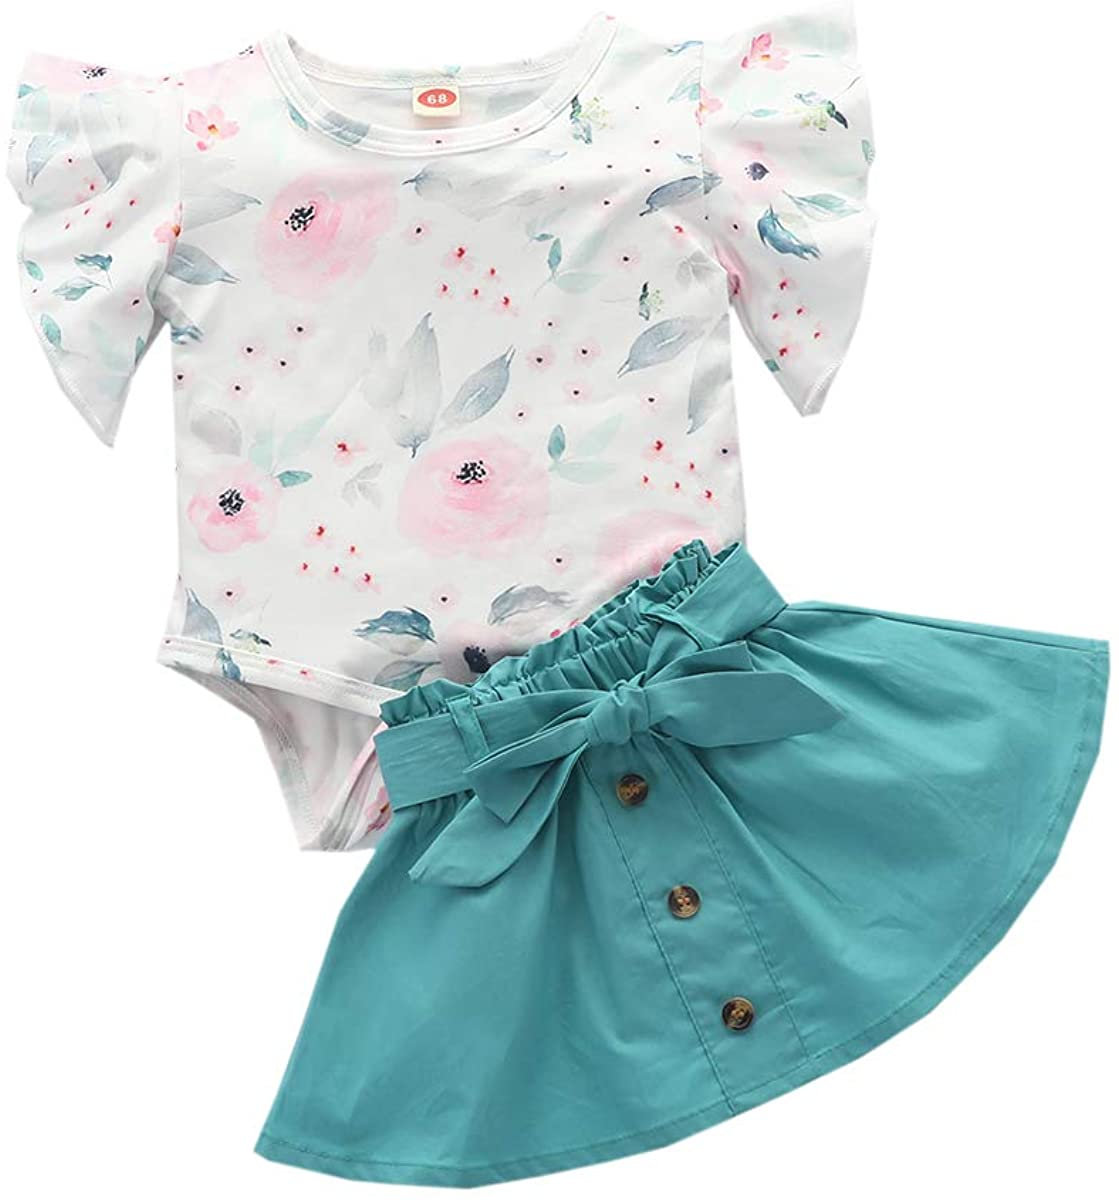 Toddler Baby Girl Skirt Sets Ruffled Romper Bodysuit+Belted Button Skirt Summer Outfit Clothes